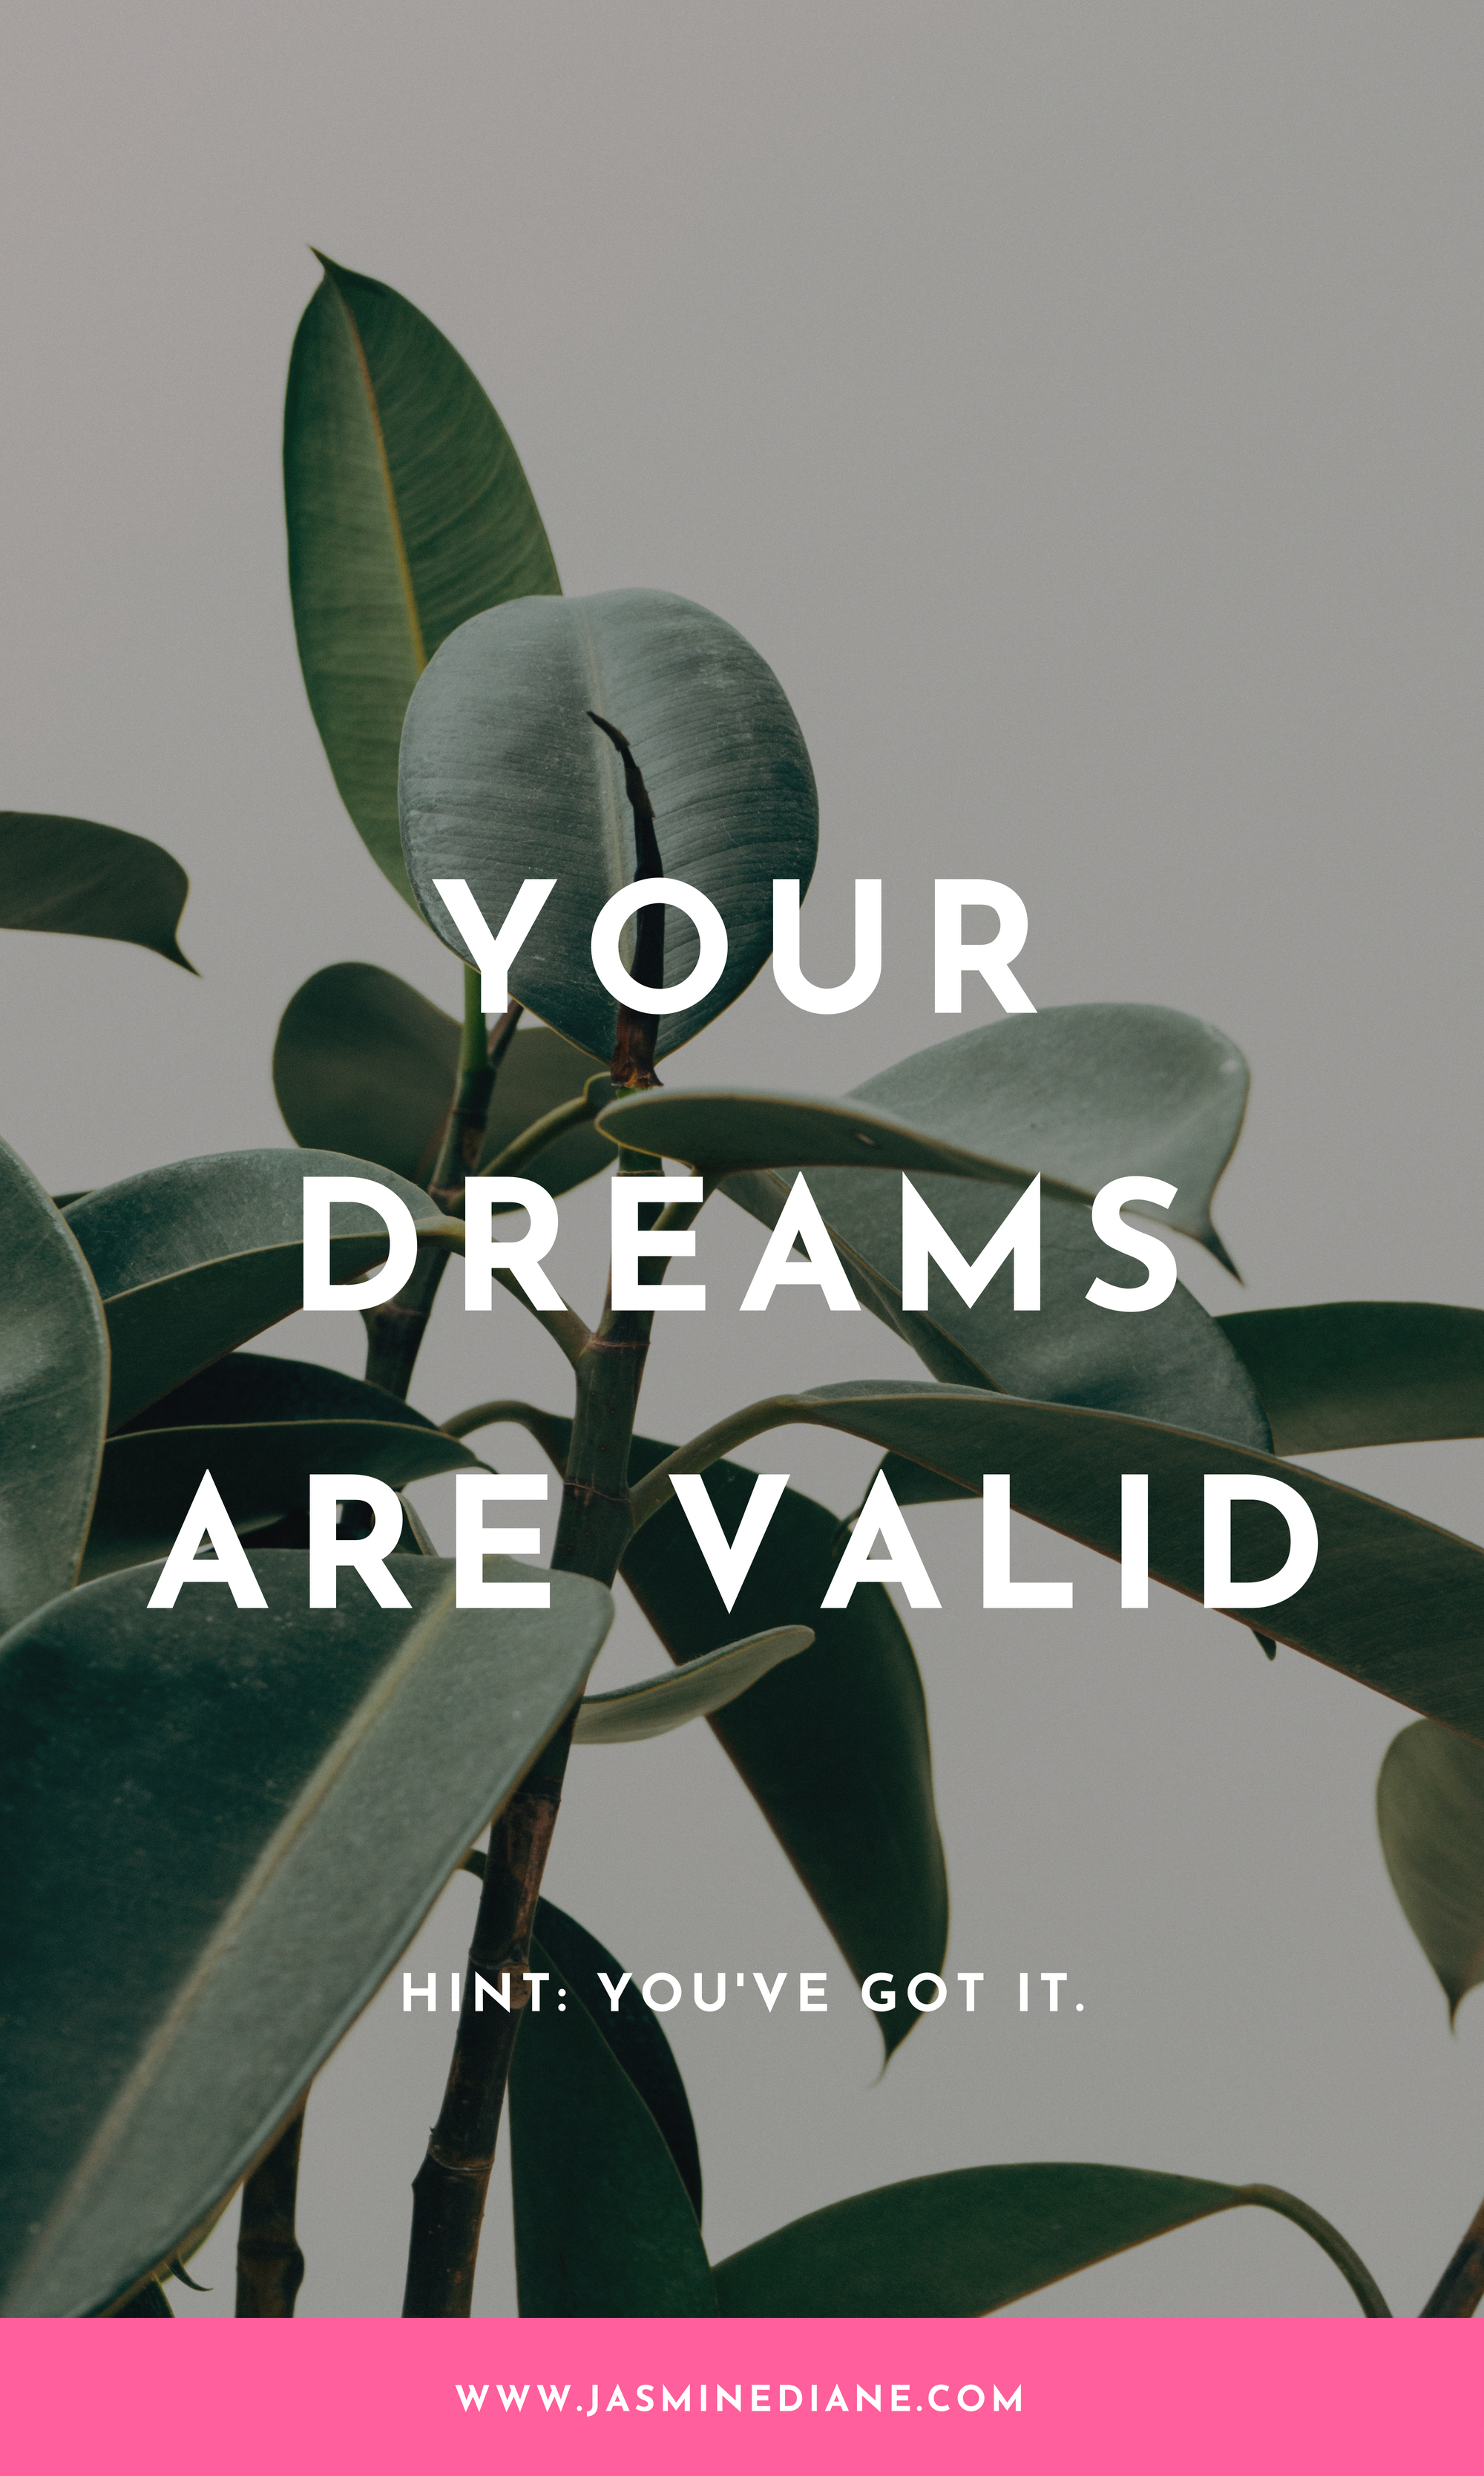 Your dreams are valid. Inspirational quotes for young women.